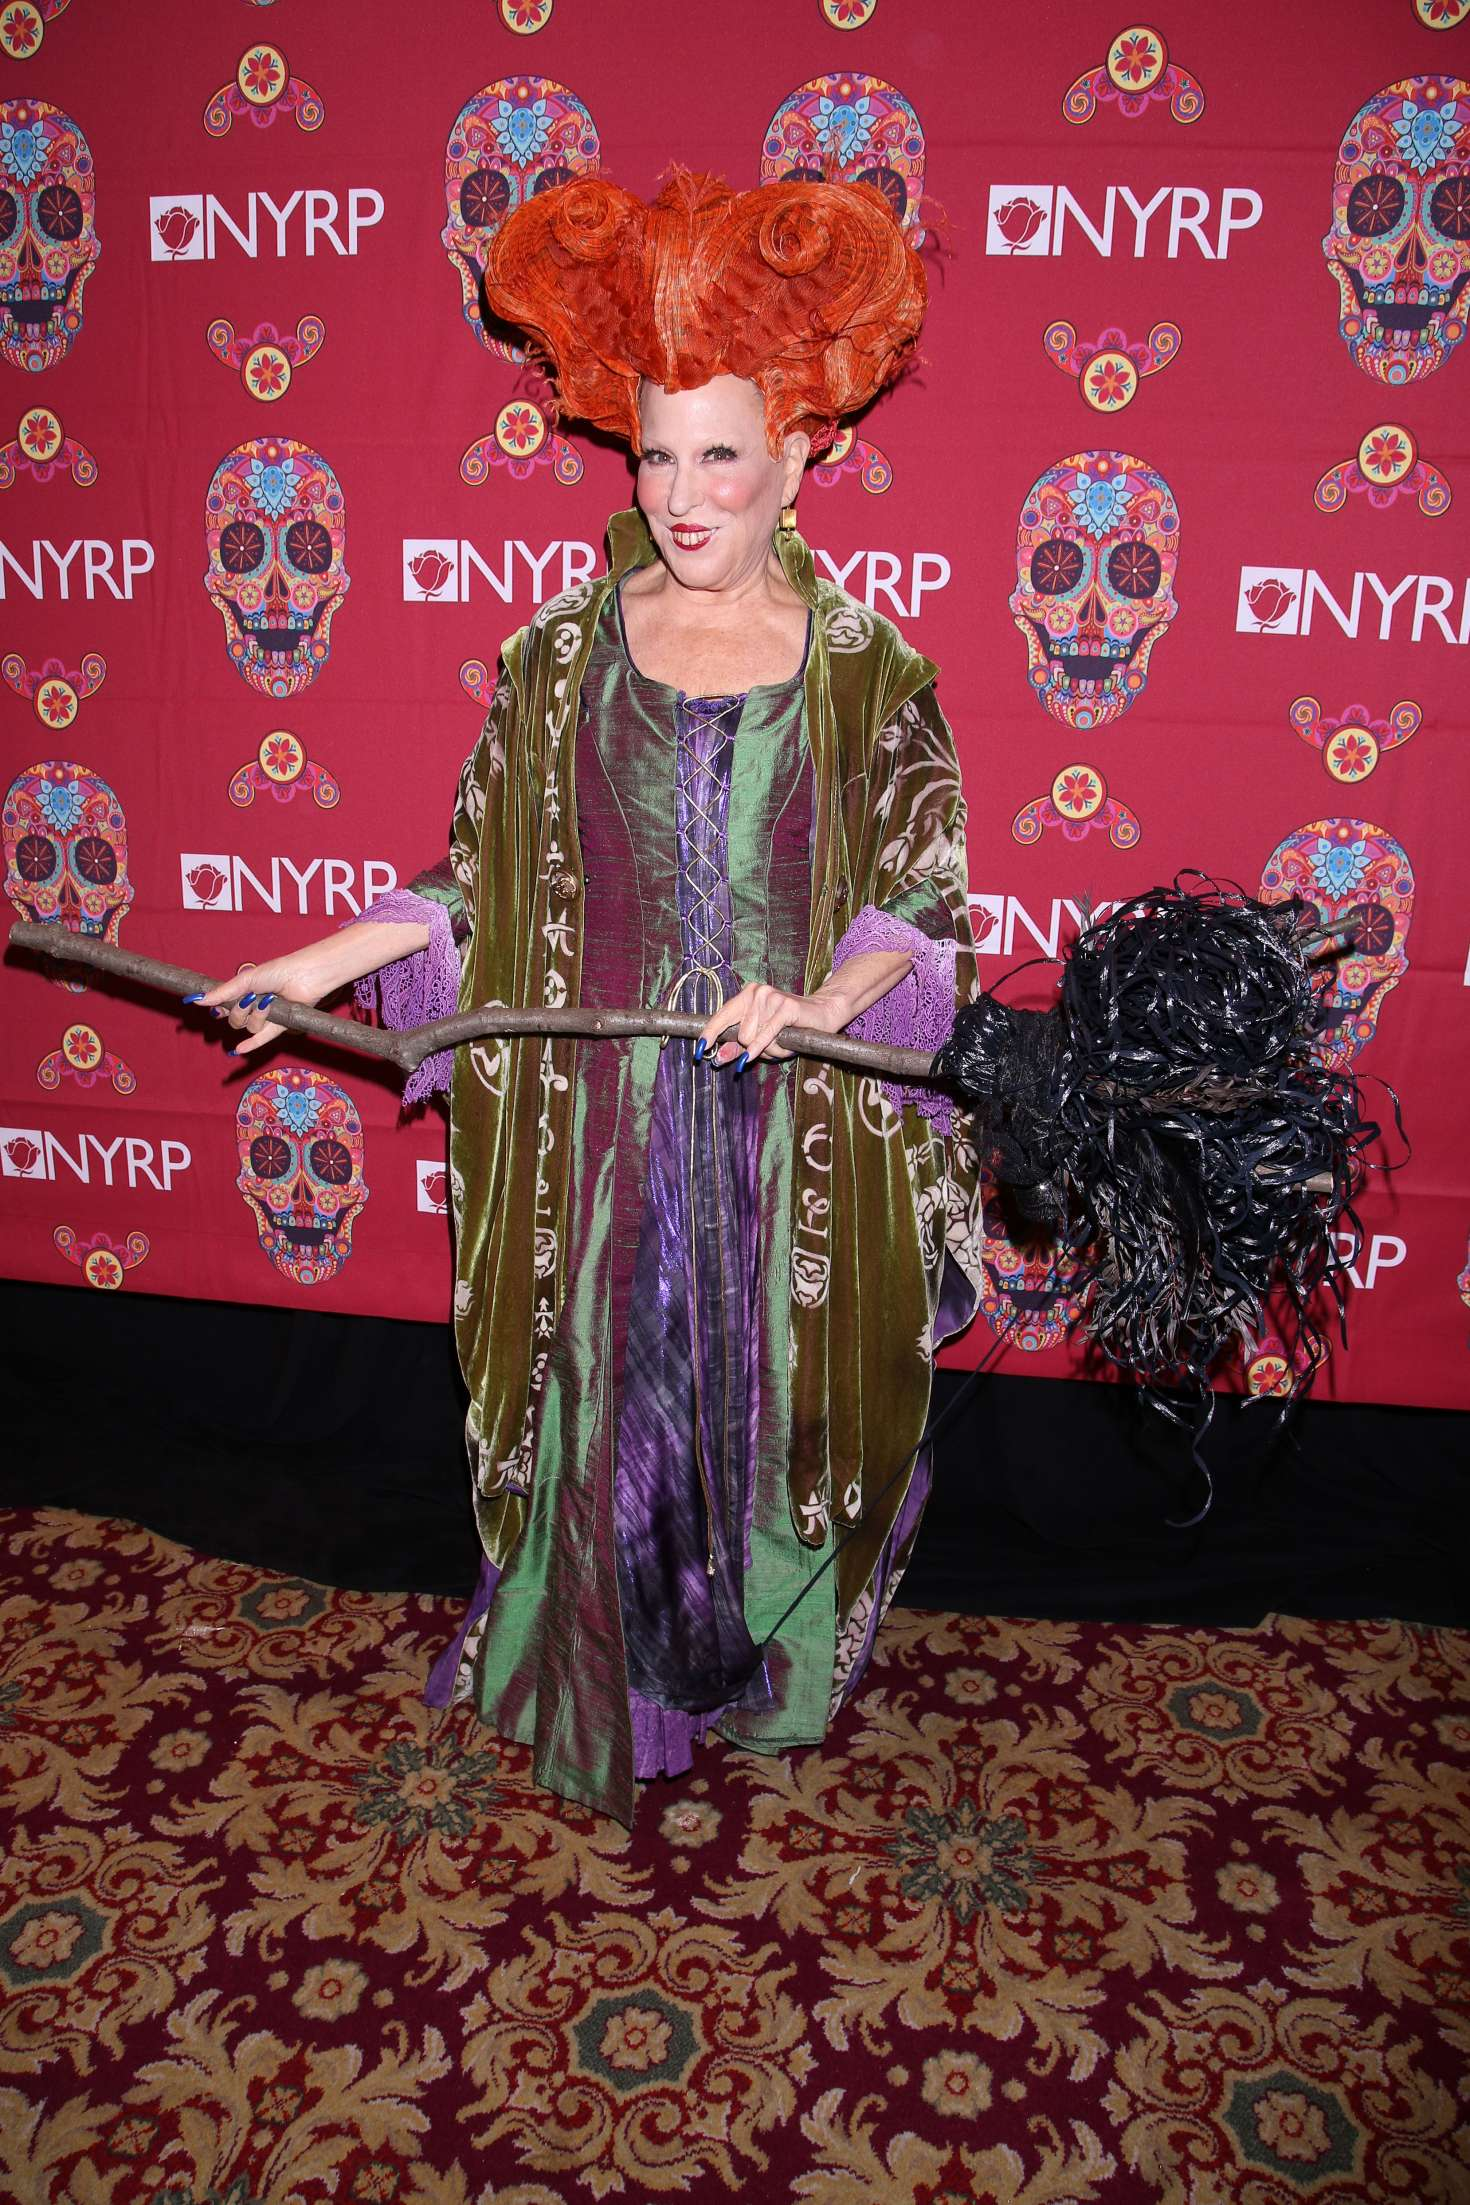 Bette Midler 2016 : Bette Midler: 2016 Halloween Bash to benefit the NYRP -18